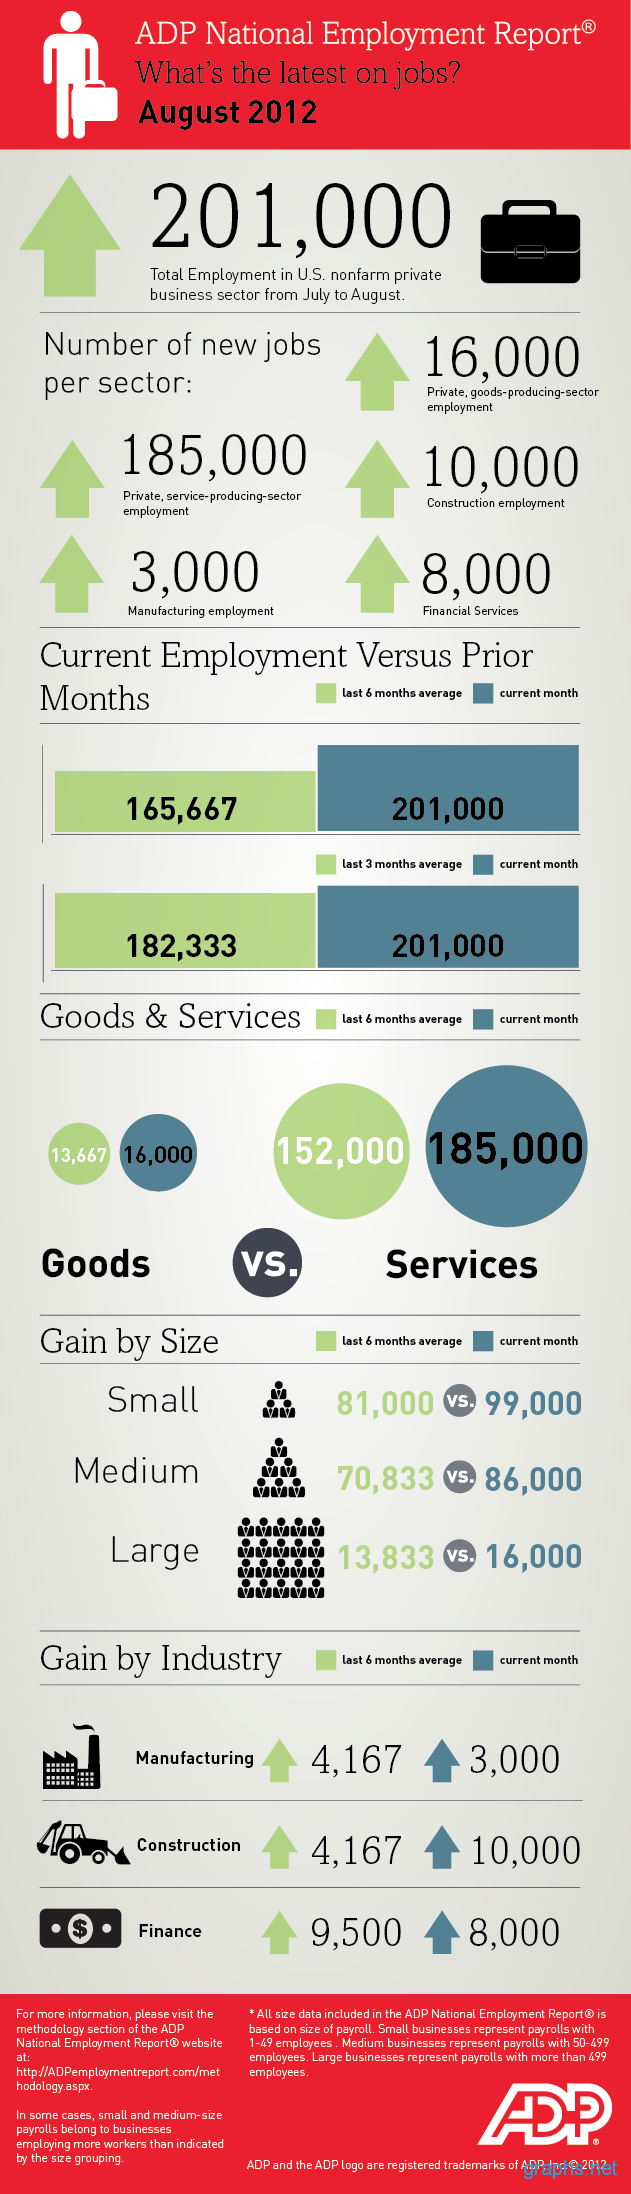 ADP national employment report 2012